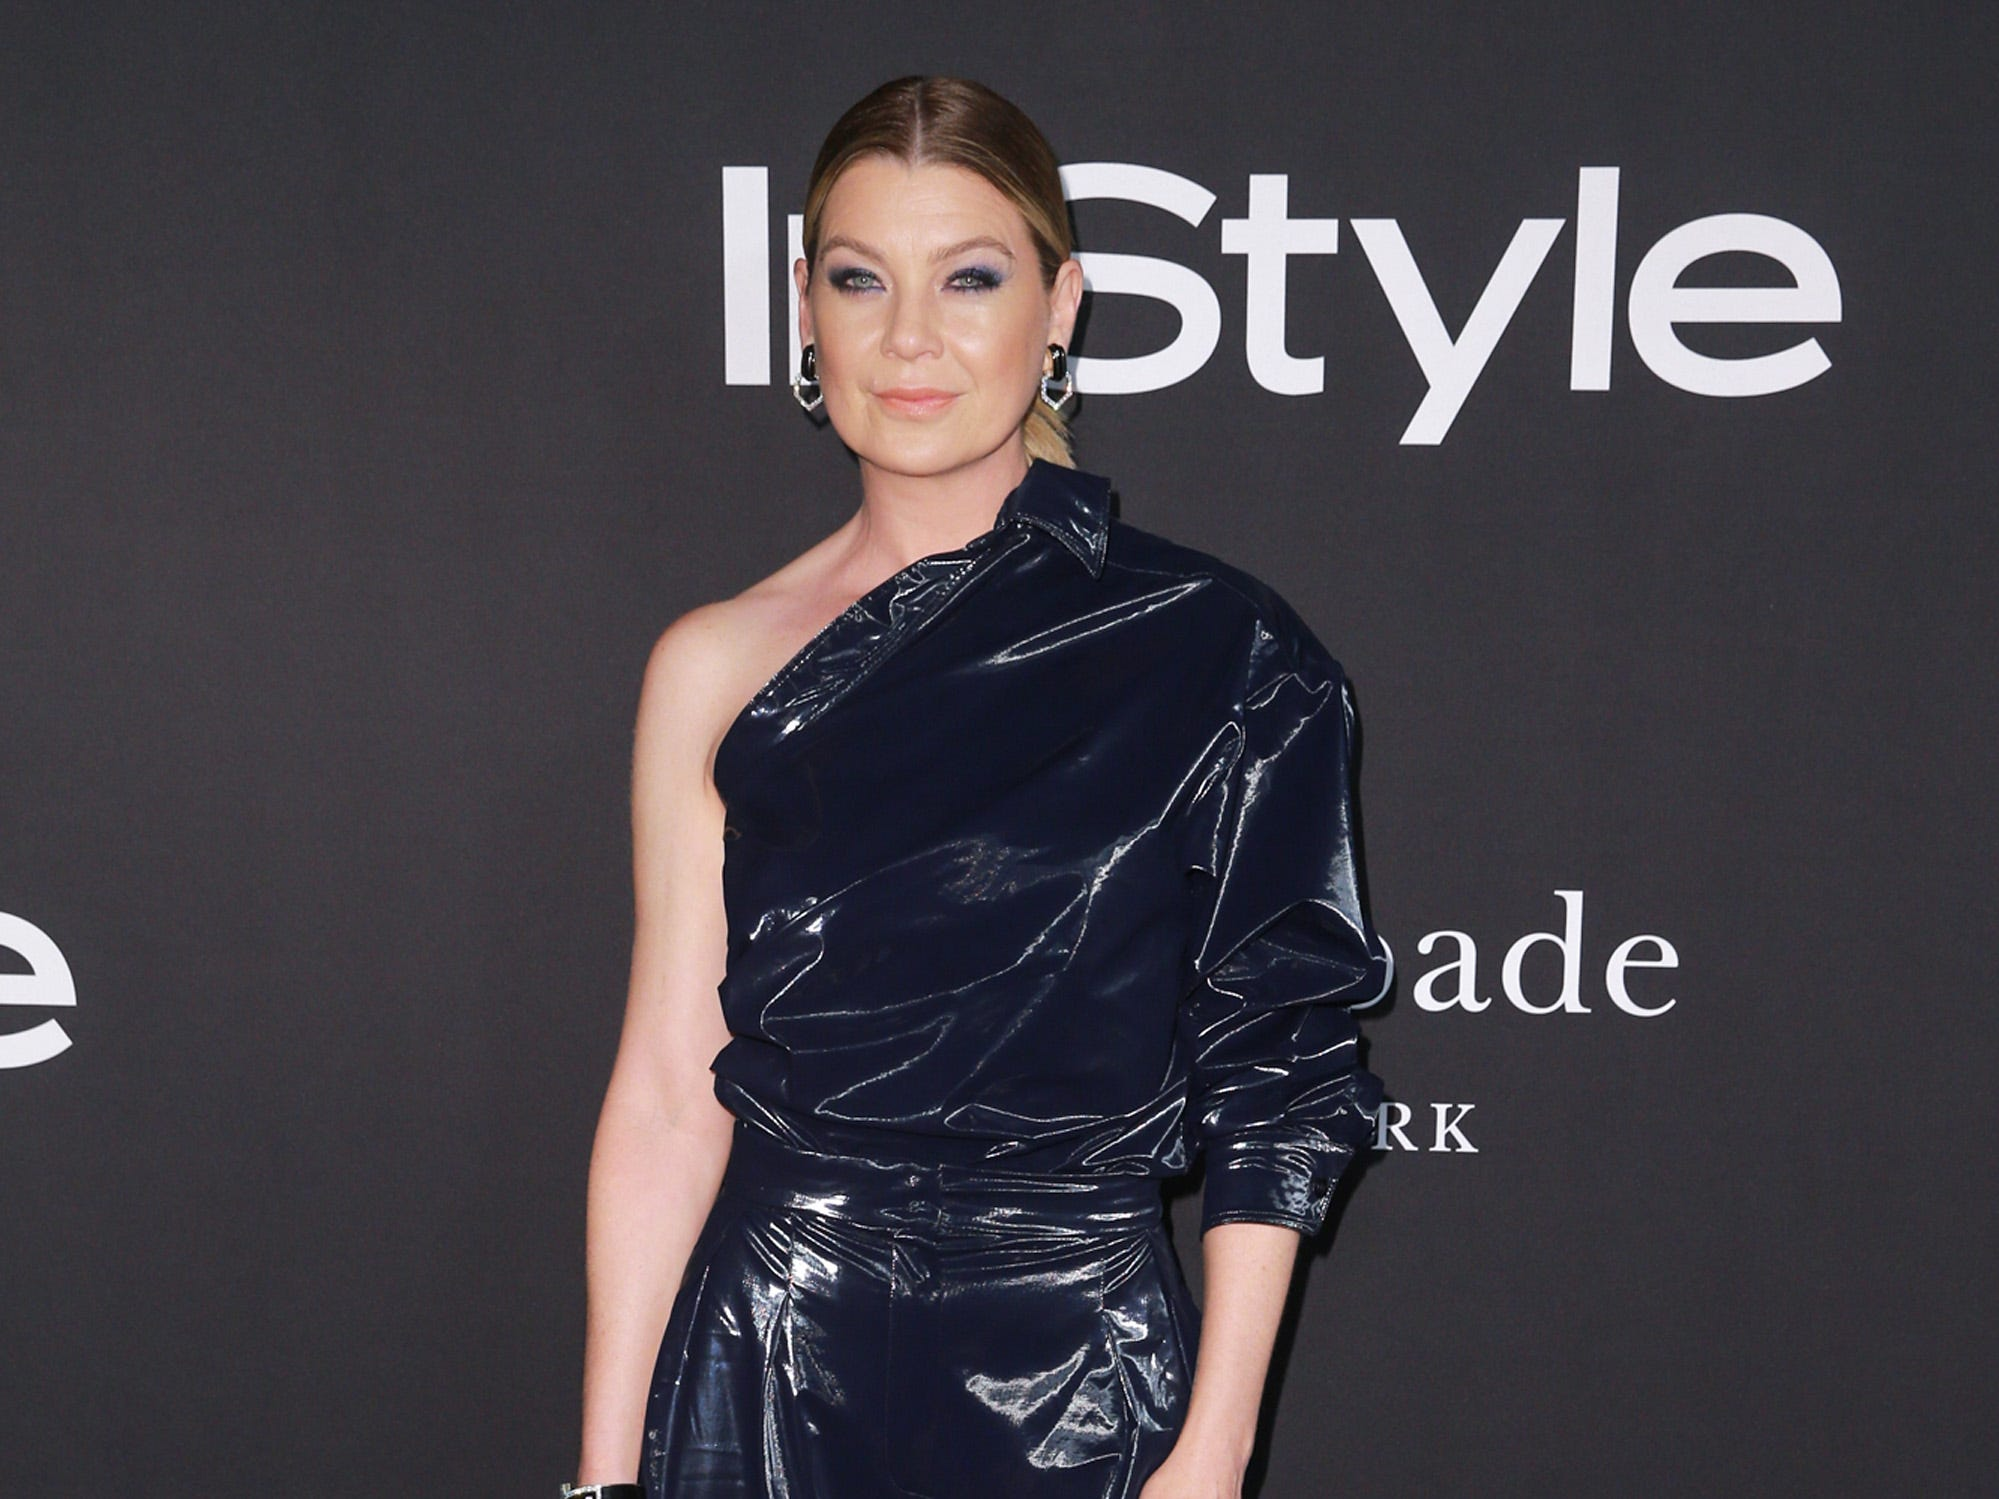 LOS ANGELES, CA - OCTOBER 22:  Ellen Pompeo attends the 2018 InStyle Awards at The Getty Center on October 22, 2018 in Los Angeles, California.  (Photo by Rich Fury/Getty Images) ORG XMIT: 775236597 ORIG FILE ID: 1052792826